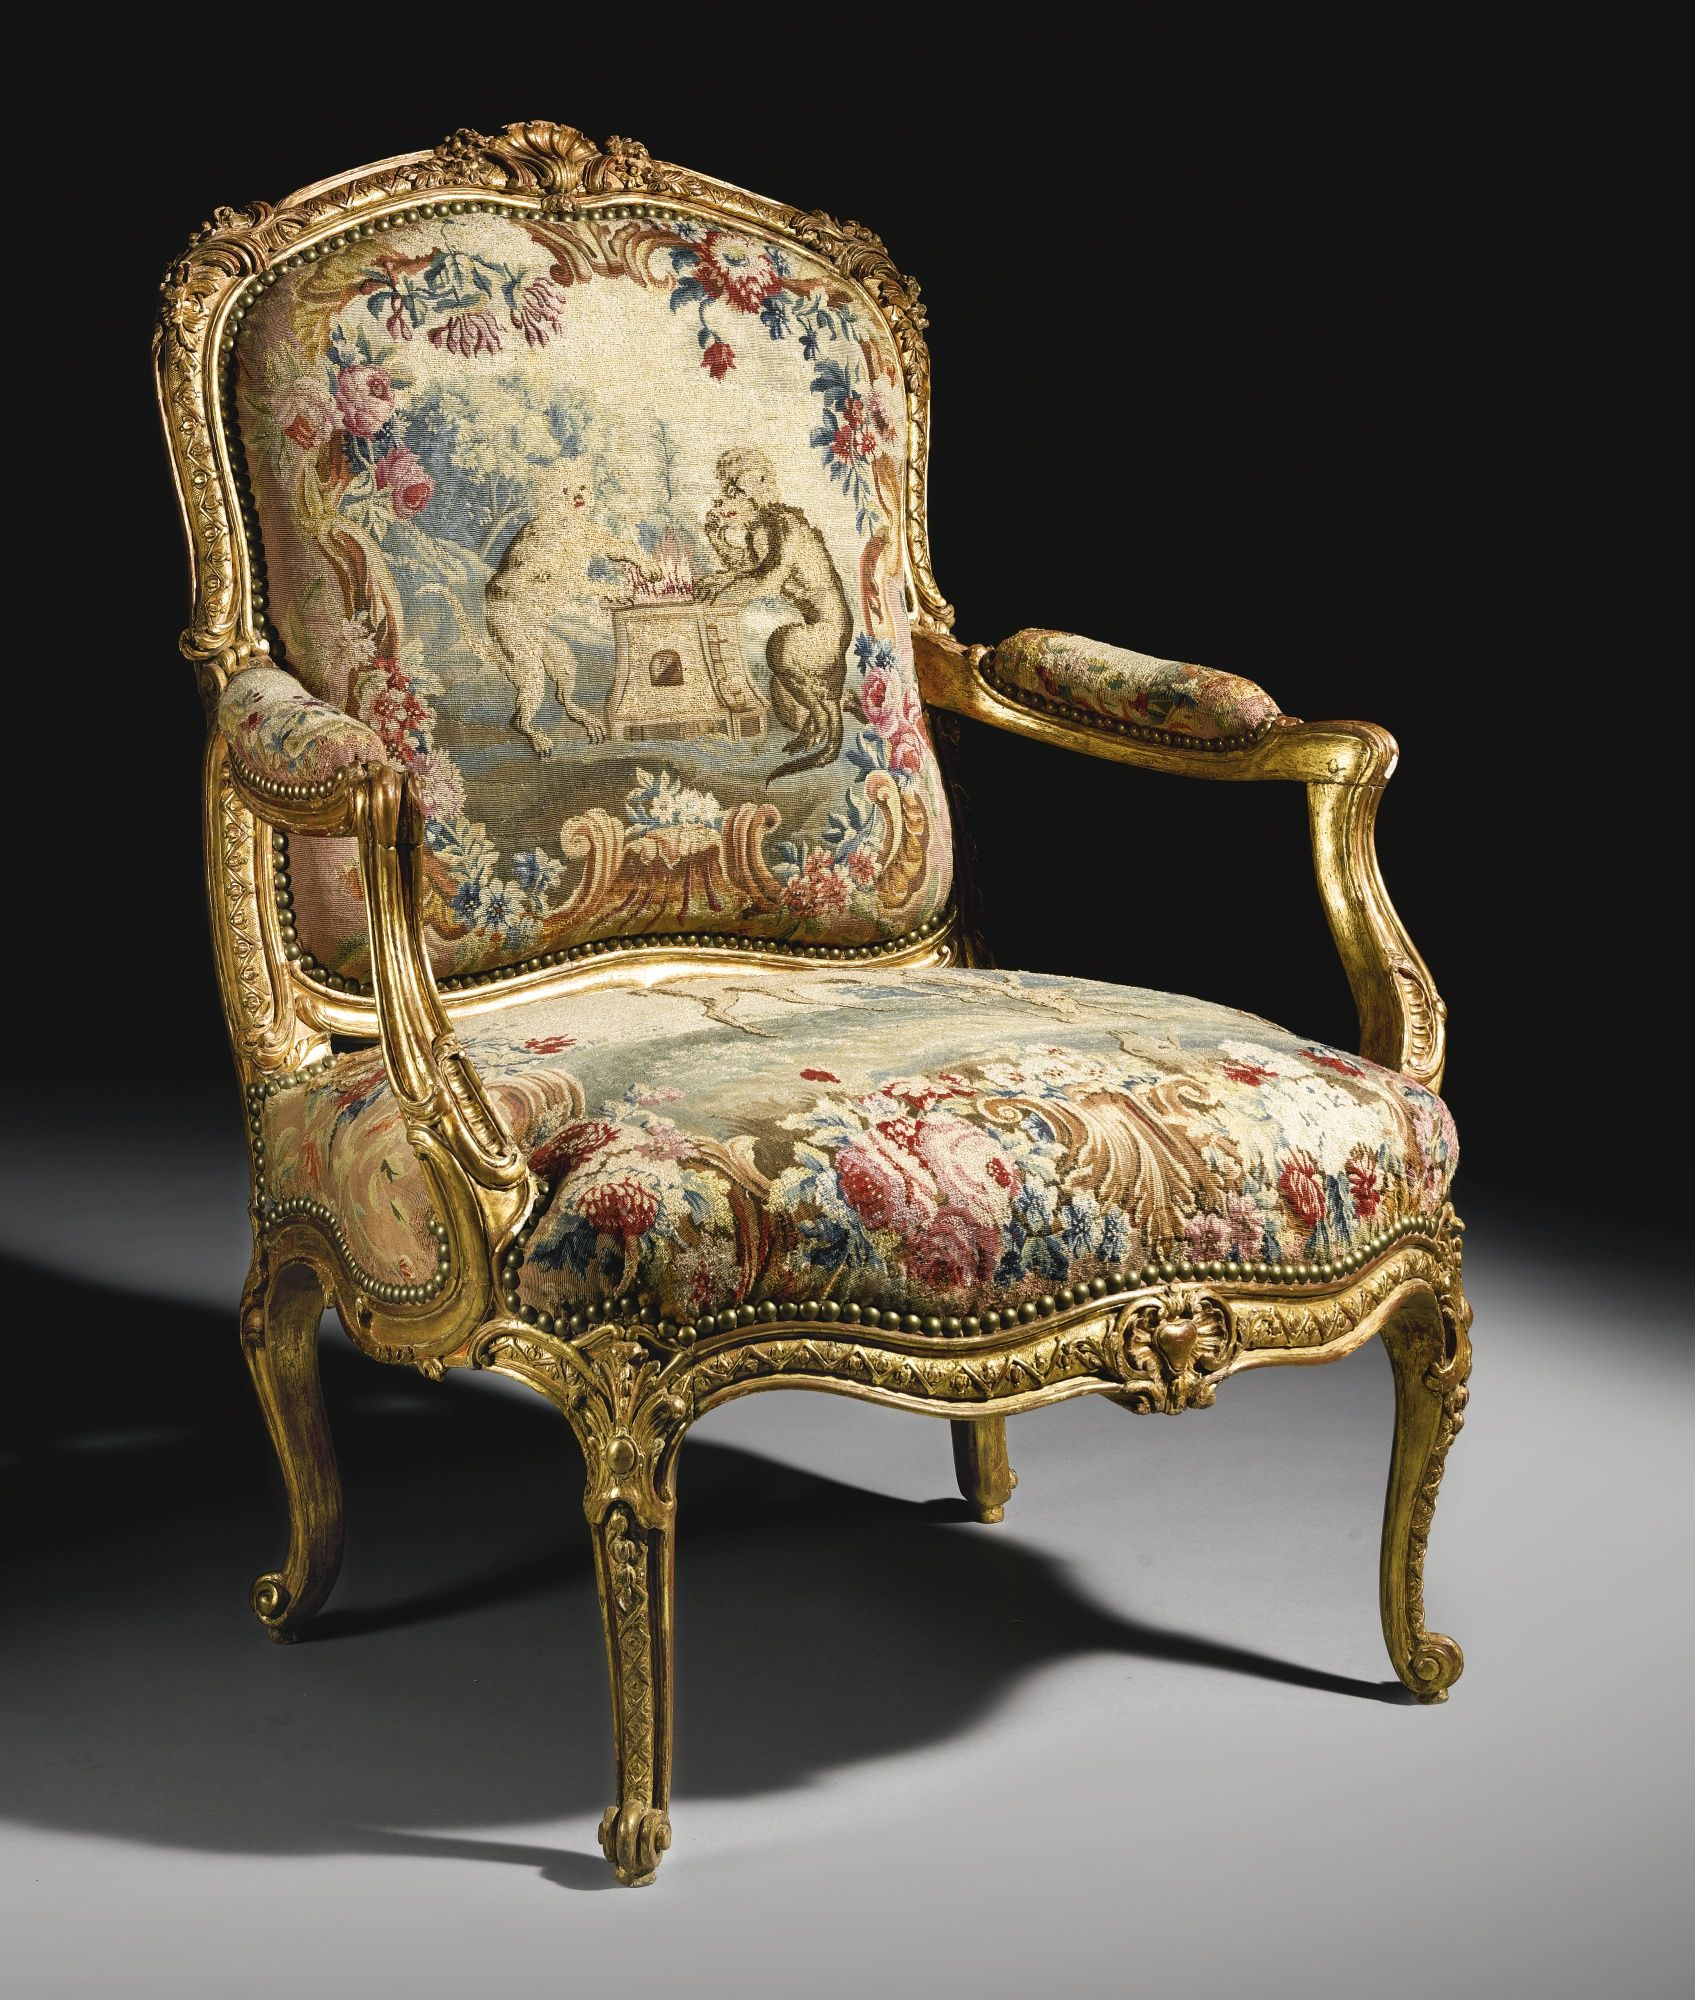 fauteuil louis xv fauteuil pinterest louis xvi fauteuils et murs peints. Black Bedroom Furniture Sets. Home Design Ideas